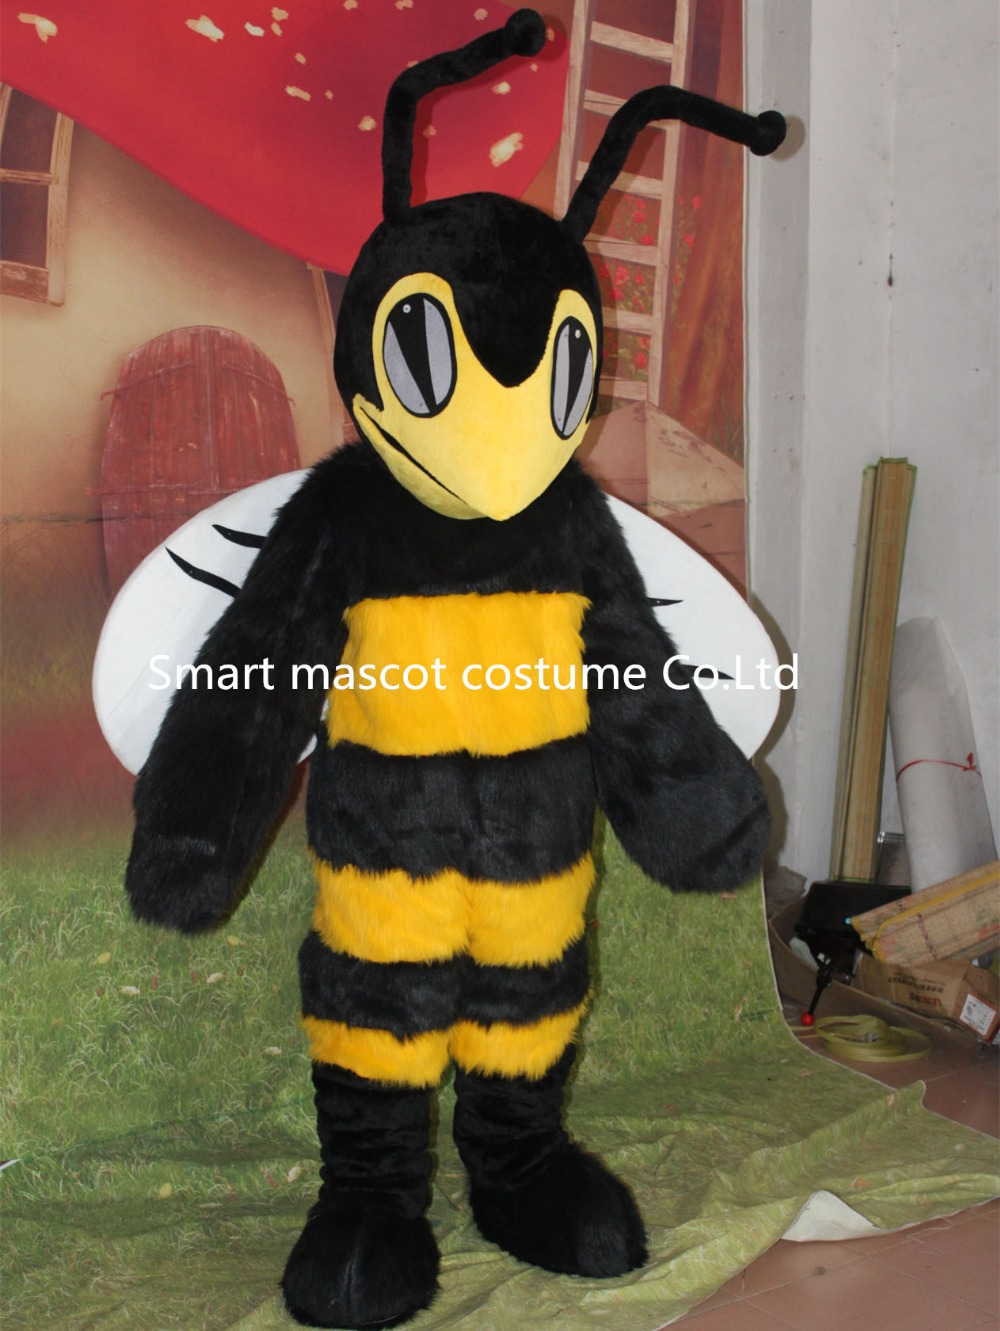 bumble bee costume adult bee mascot costume-in Mascot from Novelty u0026 Special Use on Aliexpress.com | Alibaba Group & bumble bee costume adult bee mascot costume-in Mascot from Novelty ...